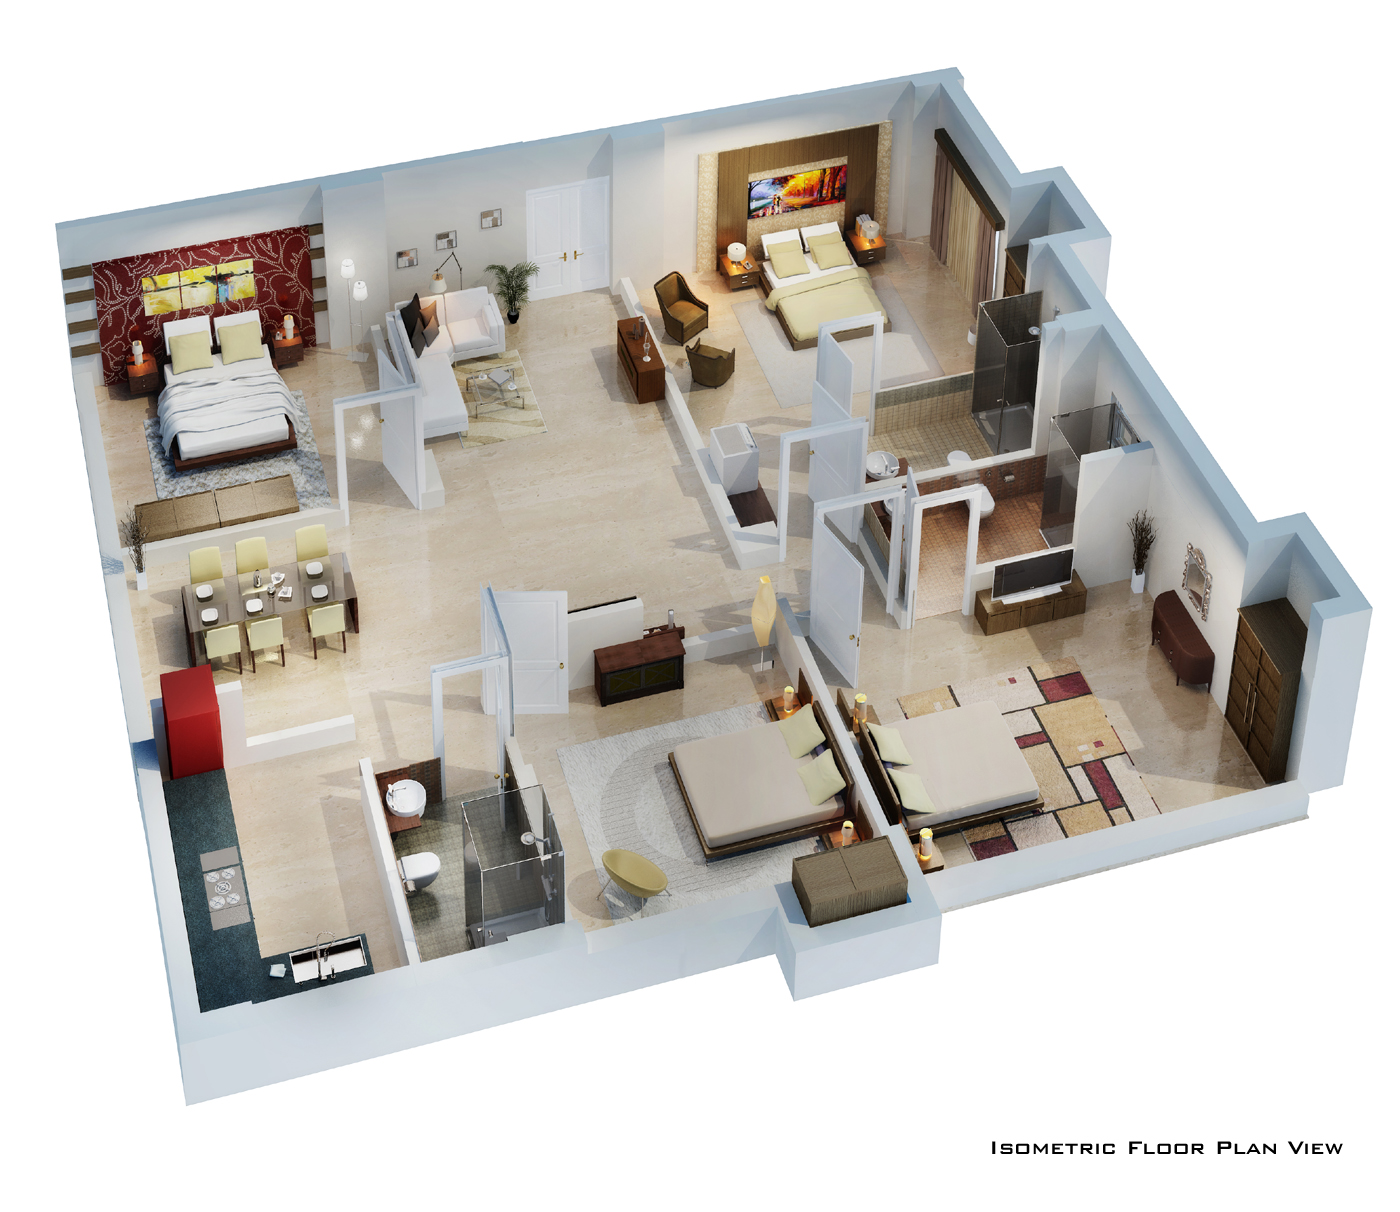 Isometric floor plan render in 3d by pradipta seth at for In plan 3d